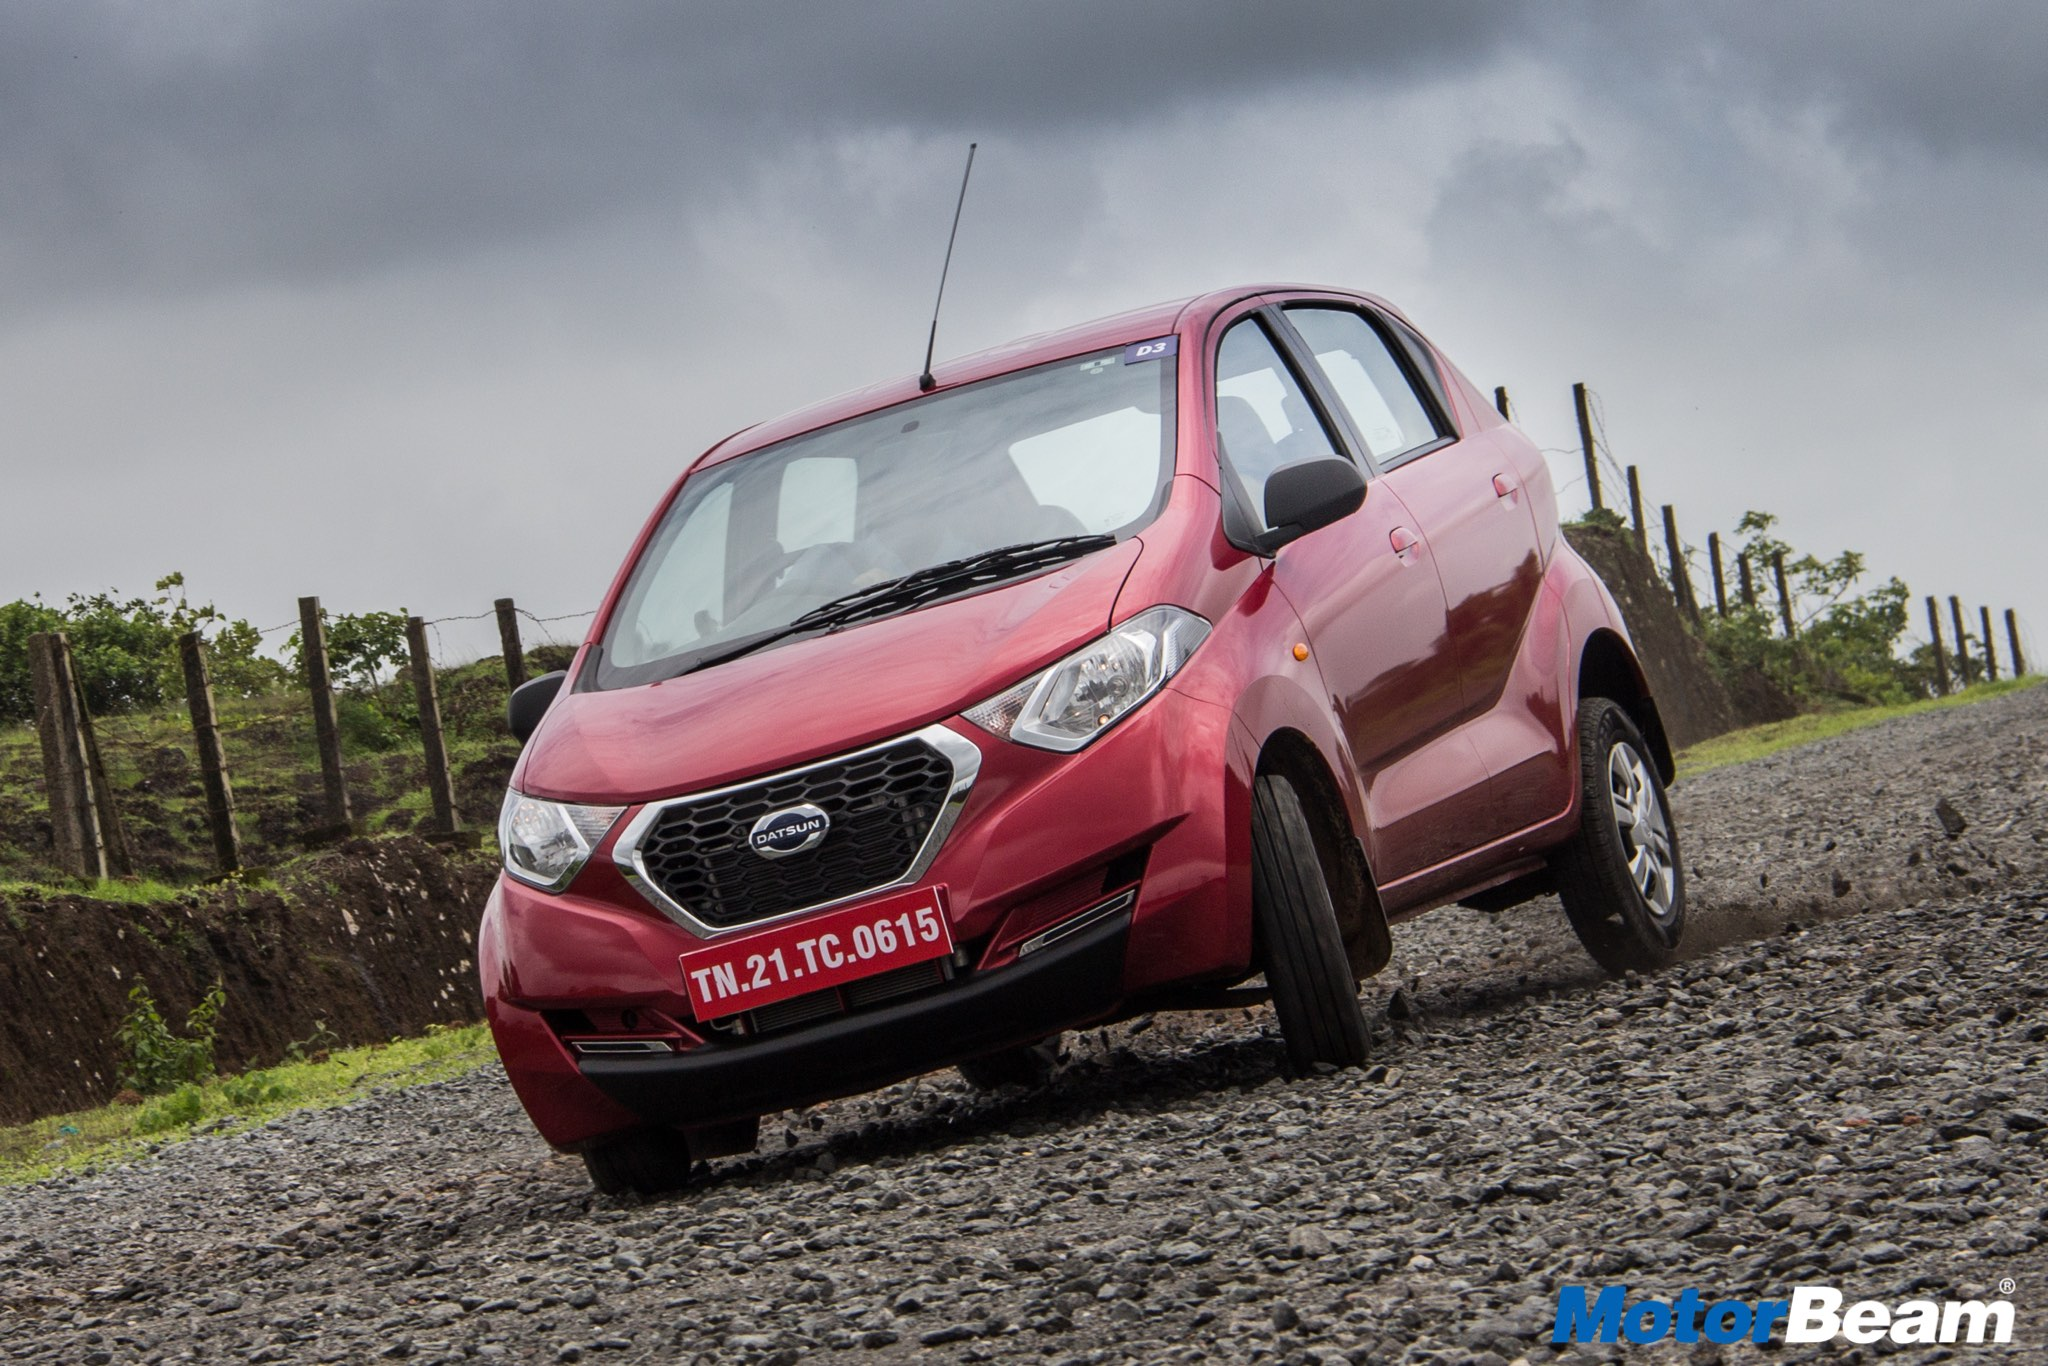 Datsun redi-GO 1.0 Review Test Drive